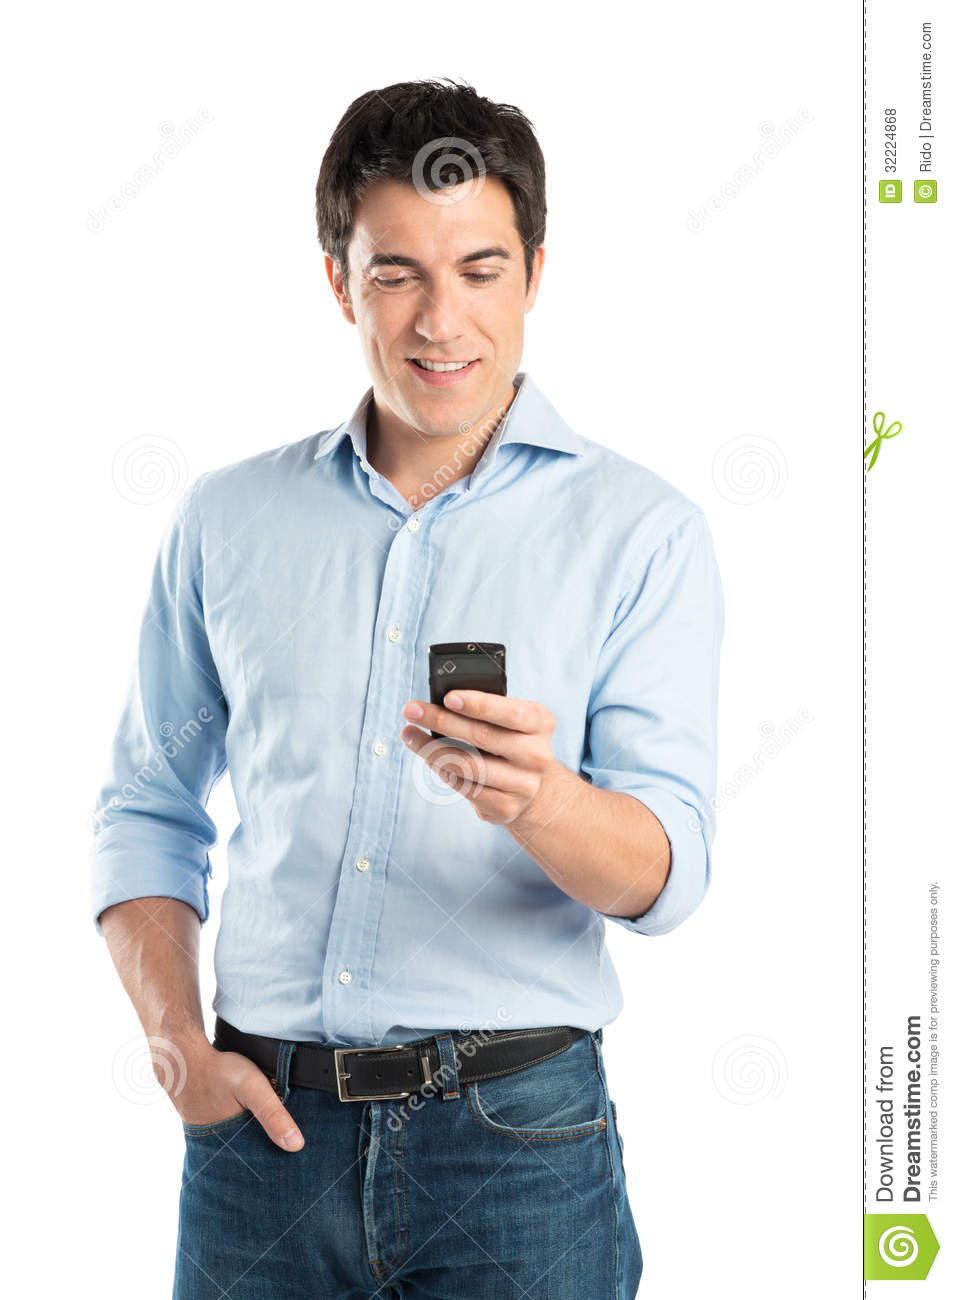 Man On Cell Phone : Happy young man using cell phone stock photo image of